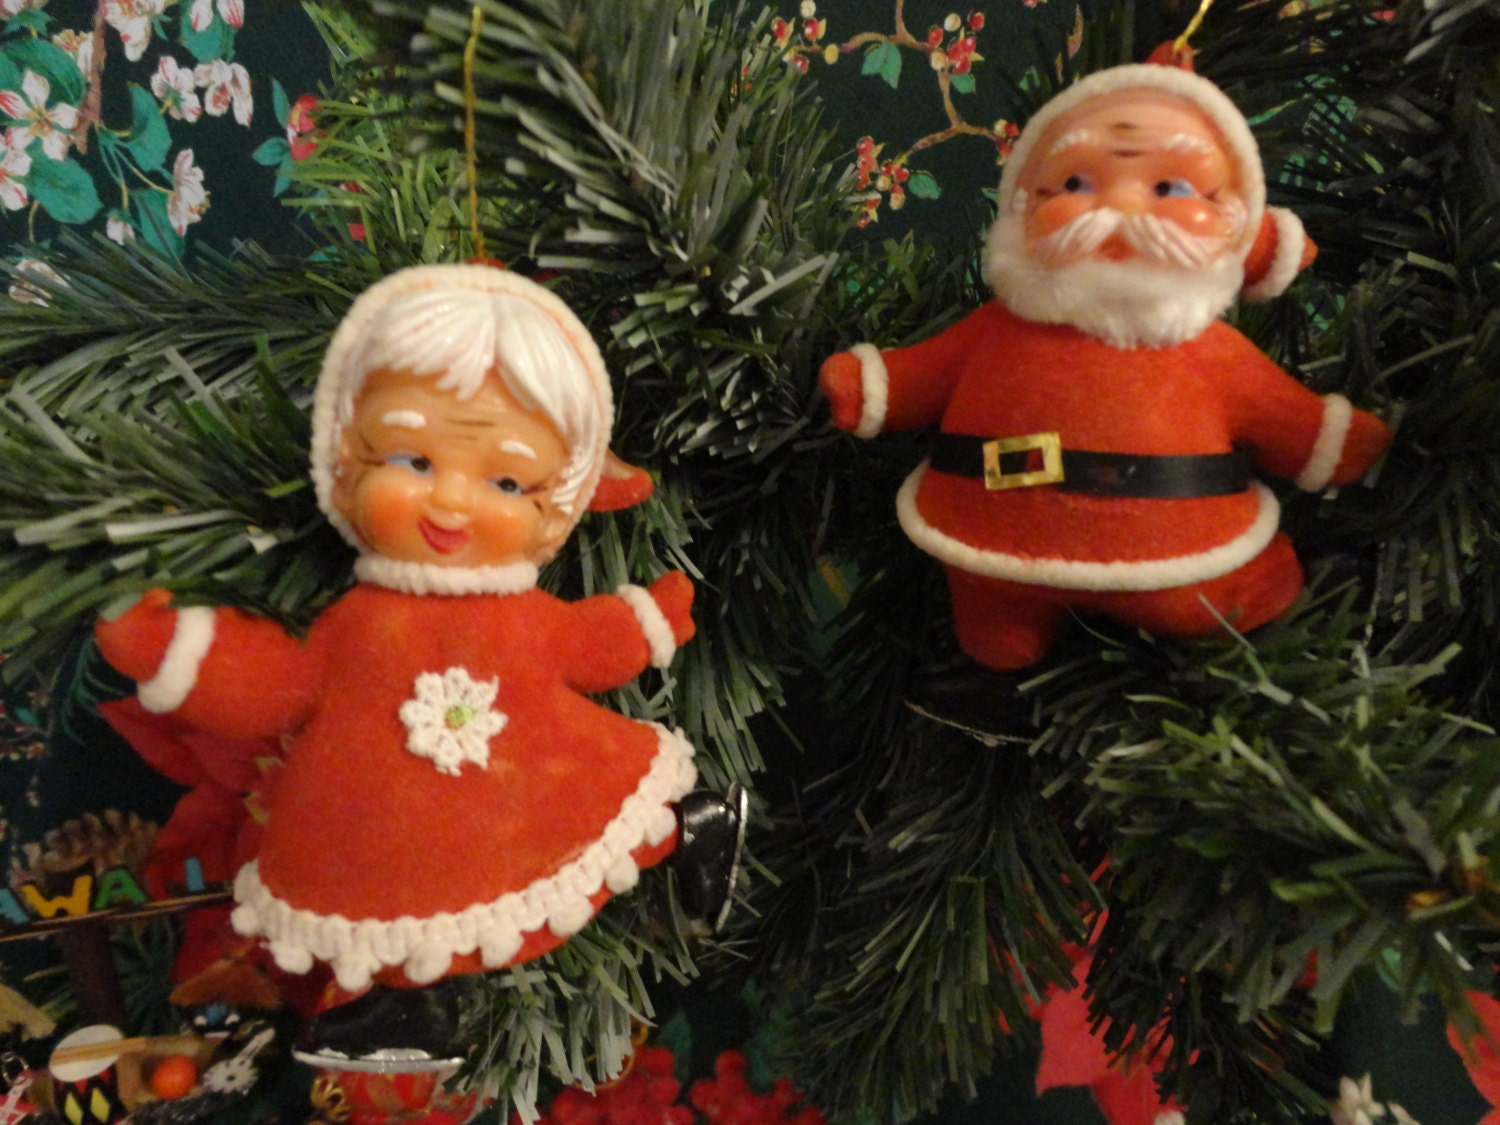 Retro christmas tree decorations - Vintage Christmas Ornaments 1960s Santa Amp Mrs Clause Figures